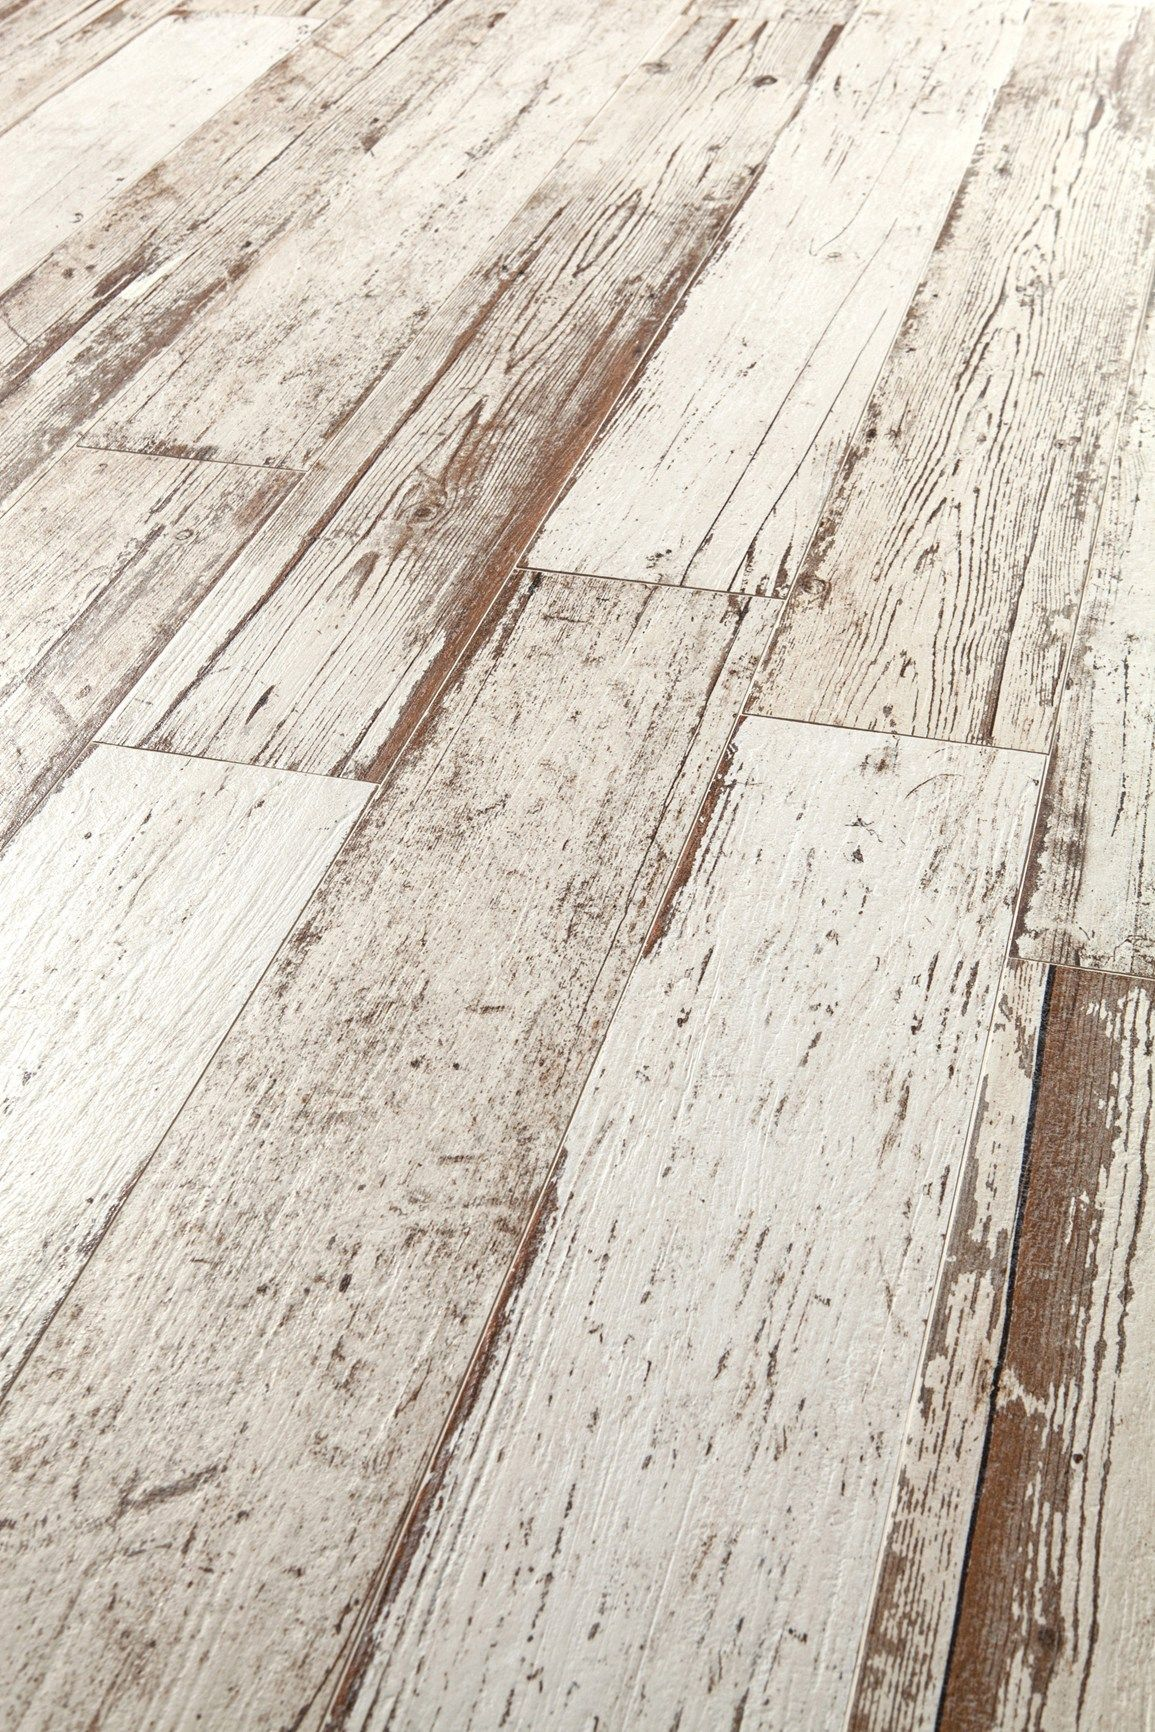 surprising tiles that look like wood. Amazing Distressed Wood Looking Tile Porcelain tile that looks like  distressed wood Link shows various colors Would be pretty for floors or backsplashes